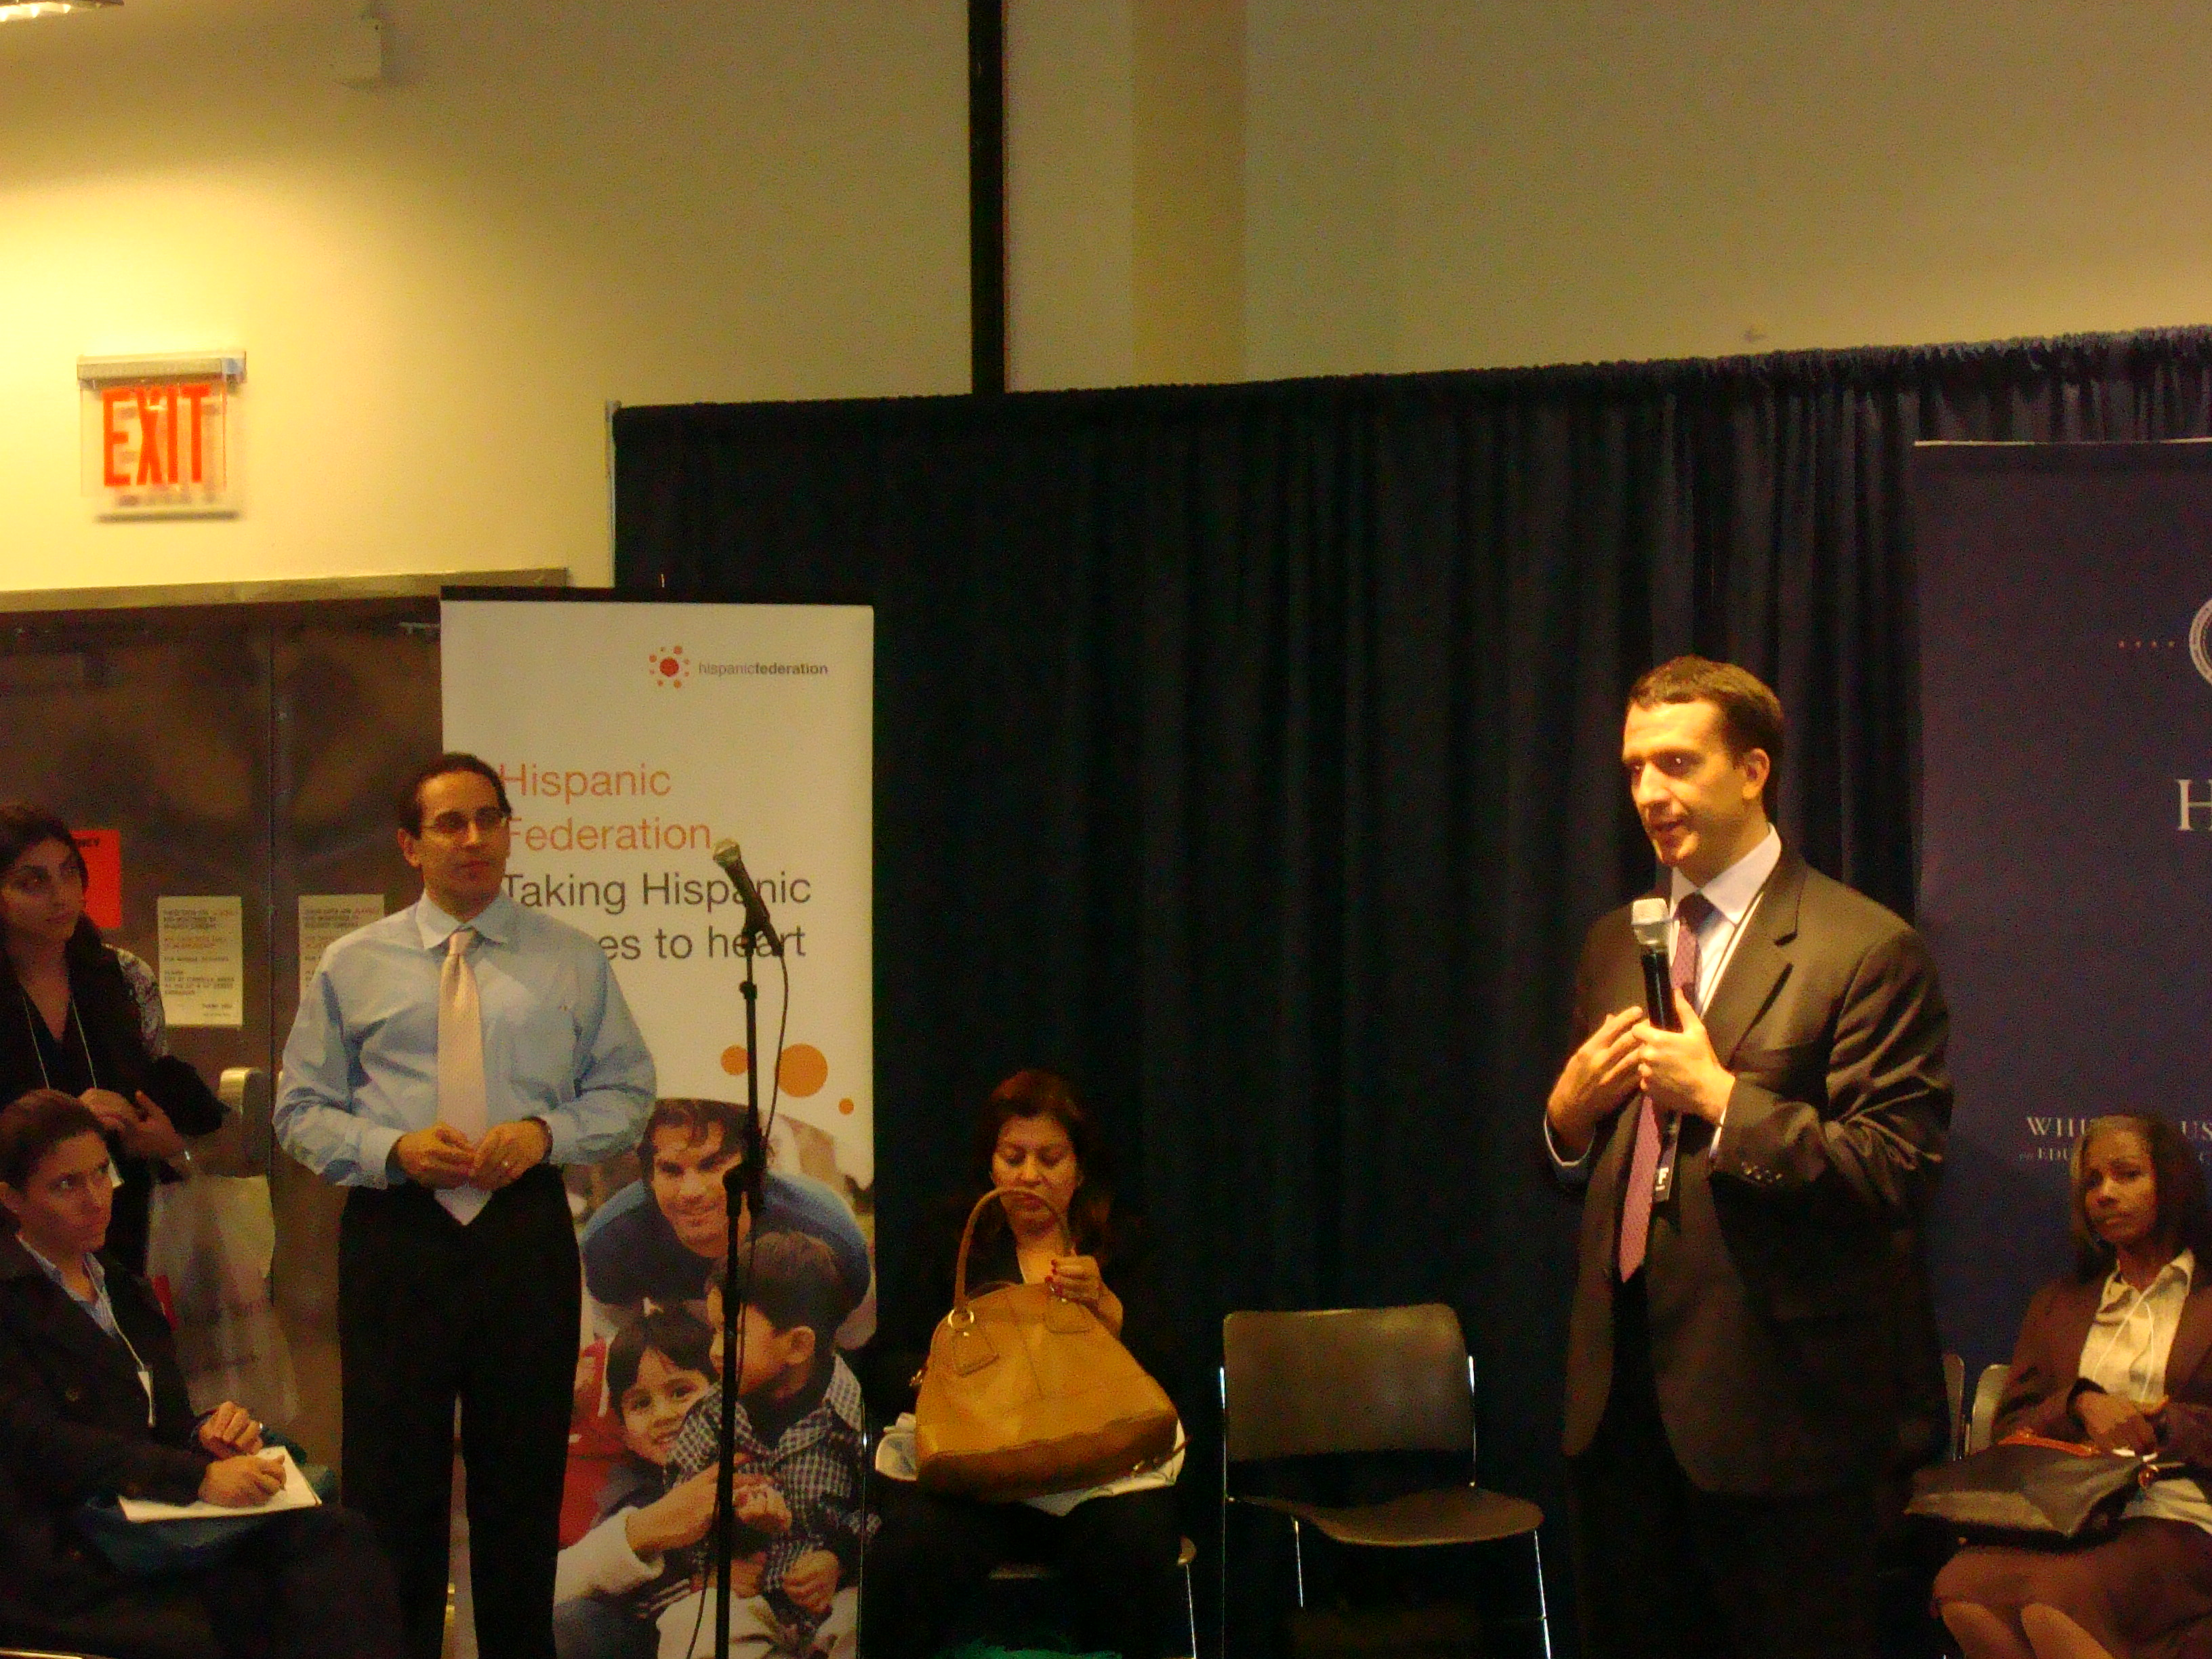 Jon Carson Speaks At White House Hispanic Community Action Summit in New York City